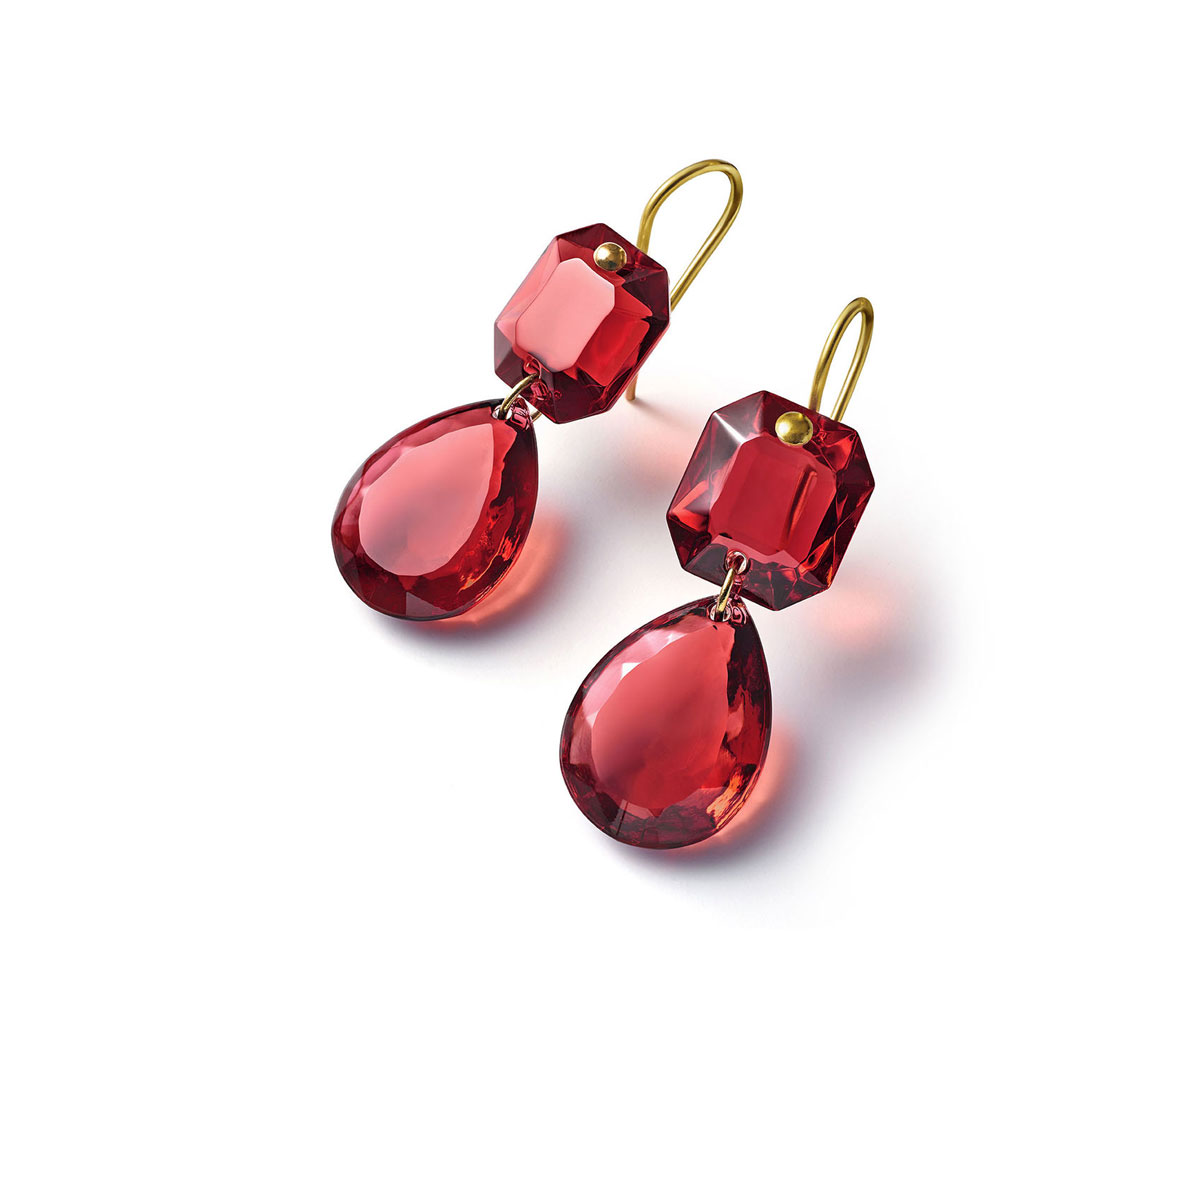 Baccarat Crystal Marie-Helene De Taillac Earrings Large Wire Vermeil Gold Red